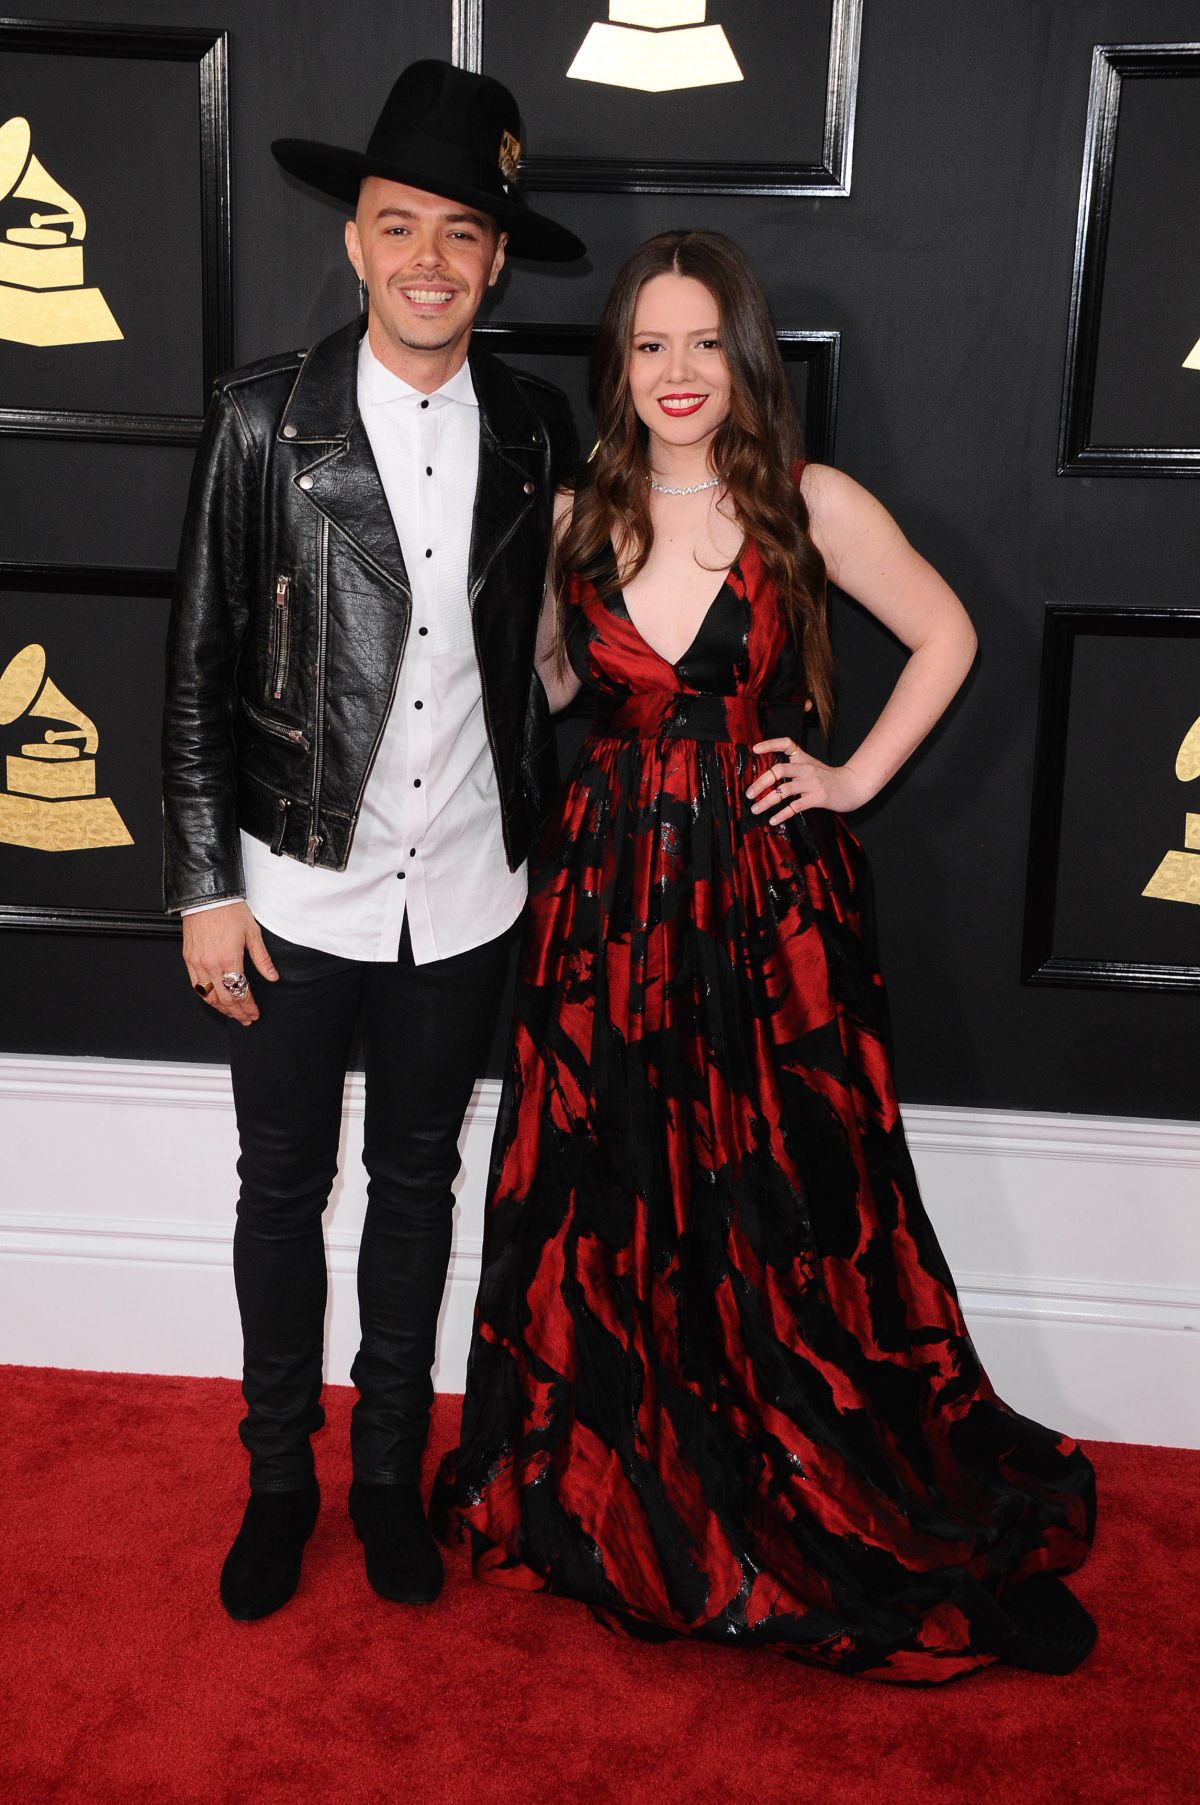 JOY HUERTA at 59th Annual Grammy Awards in Los Angeles 02/12/2017